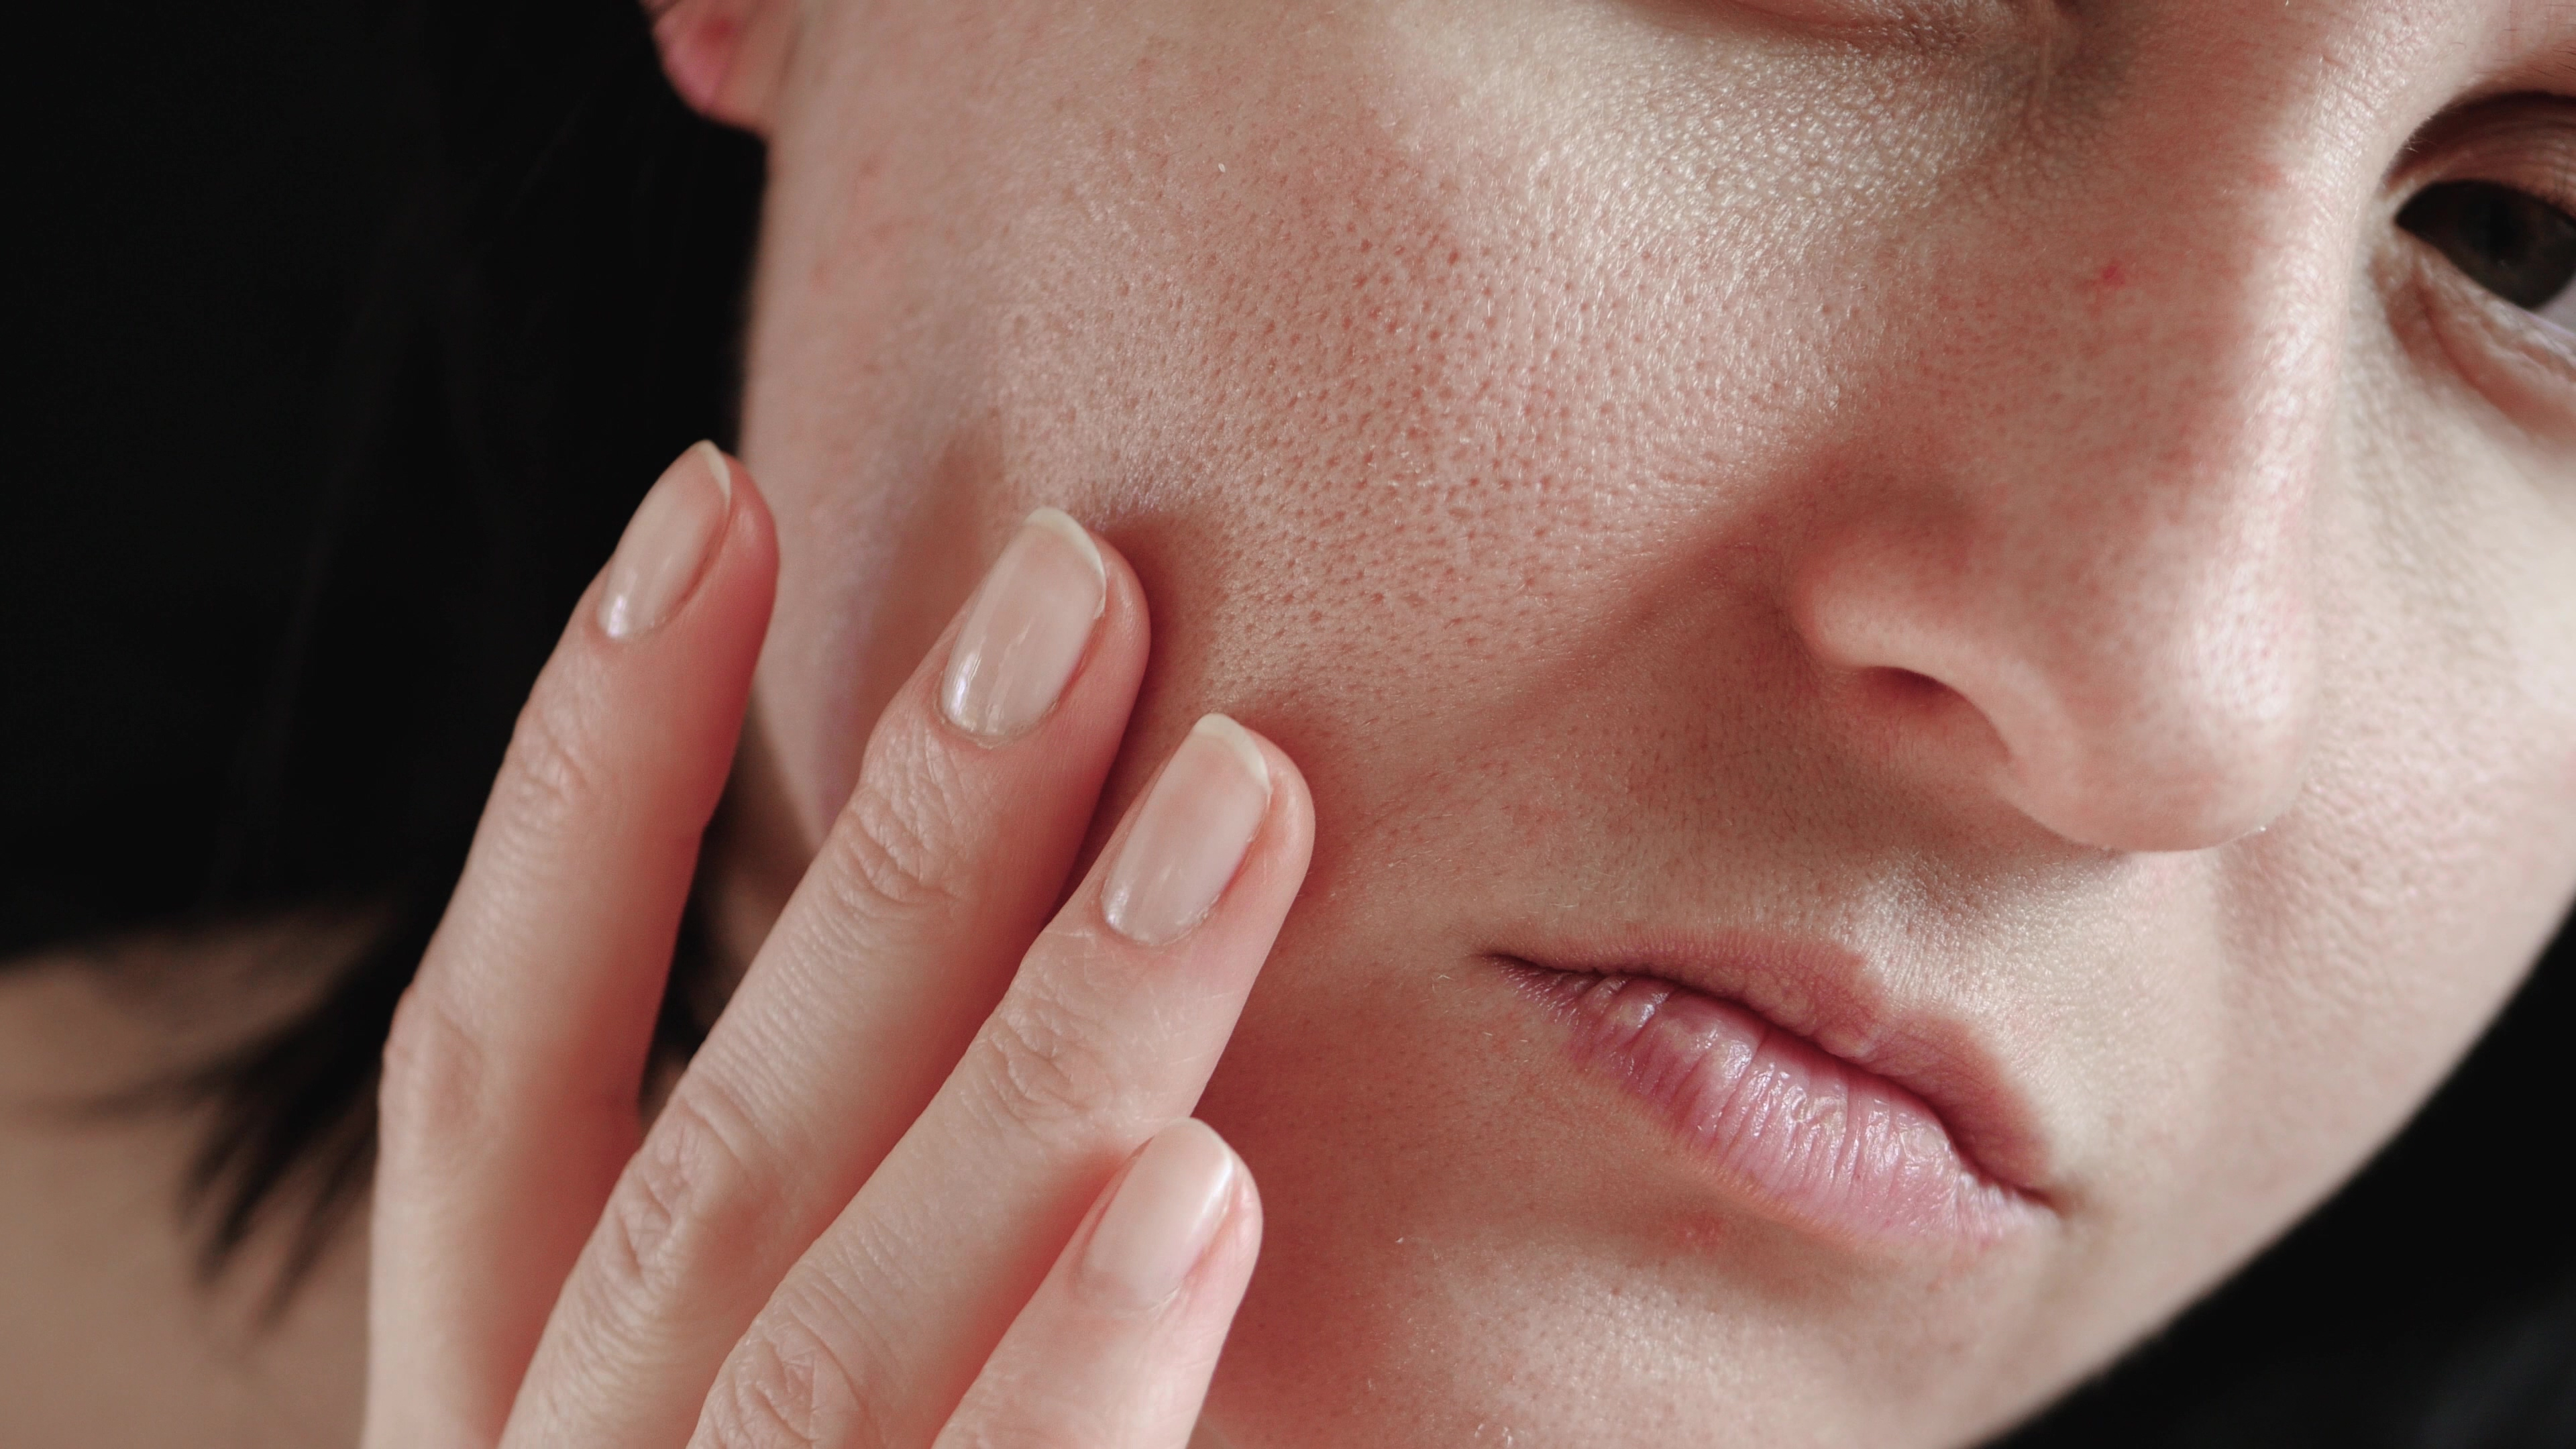 Skin: Open Pores, Oily, Congested